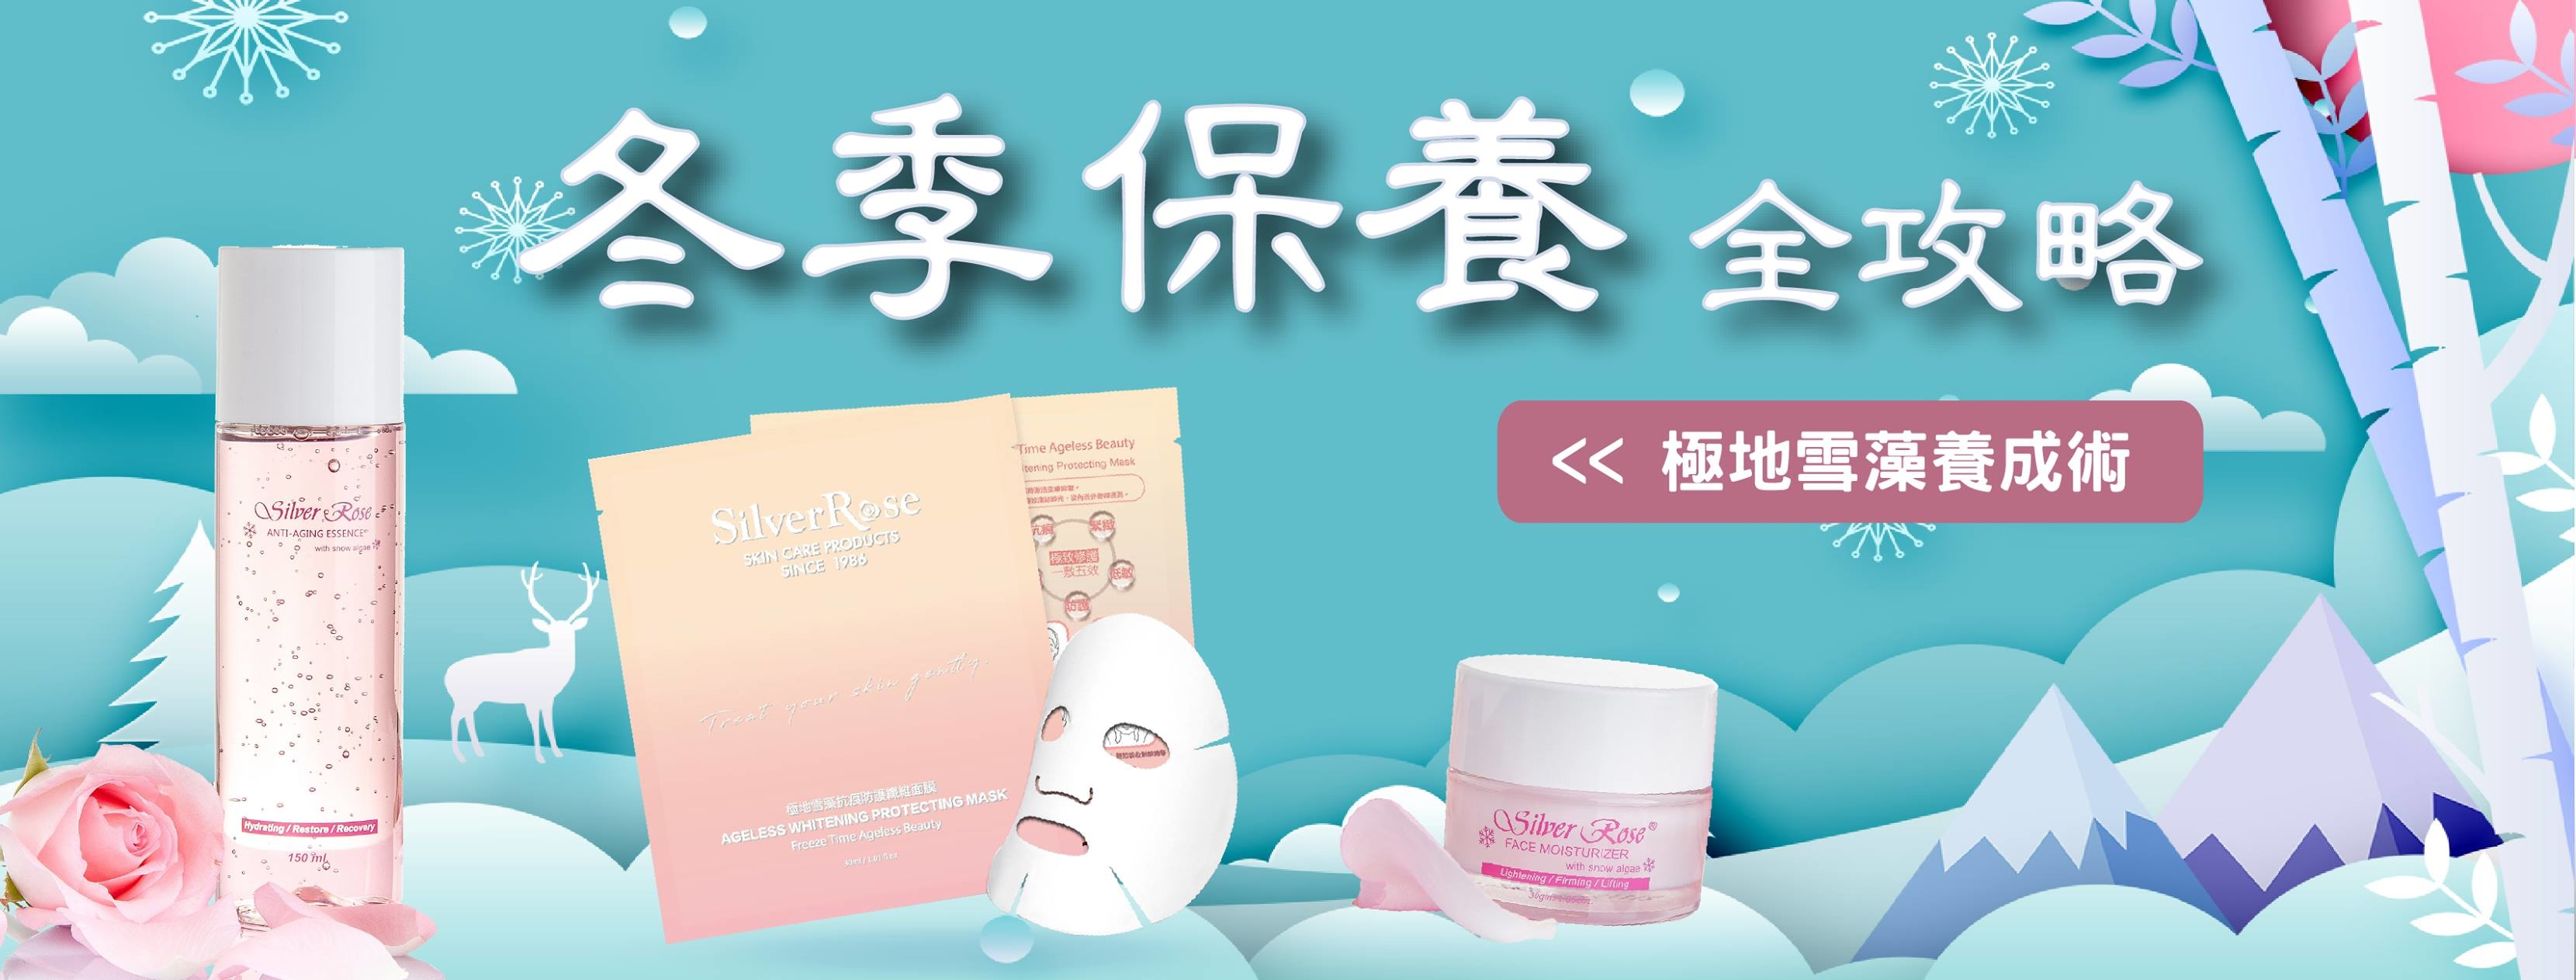 冬季肌膚保養組 Winter Season Skin Care Set